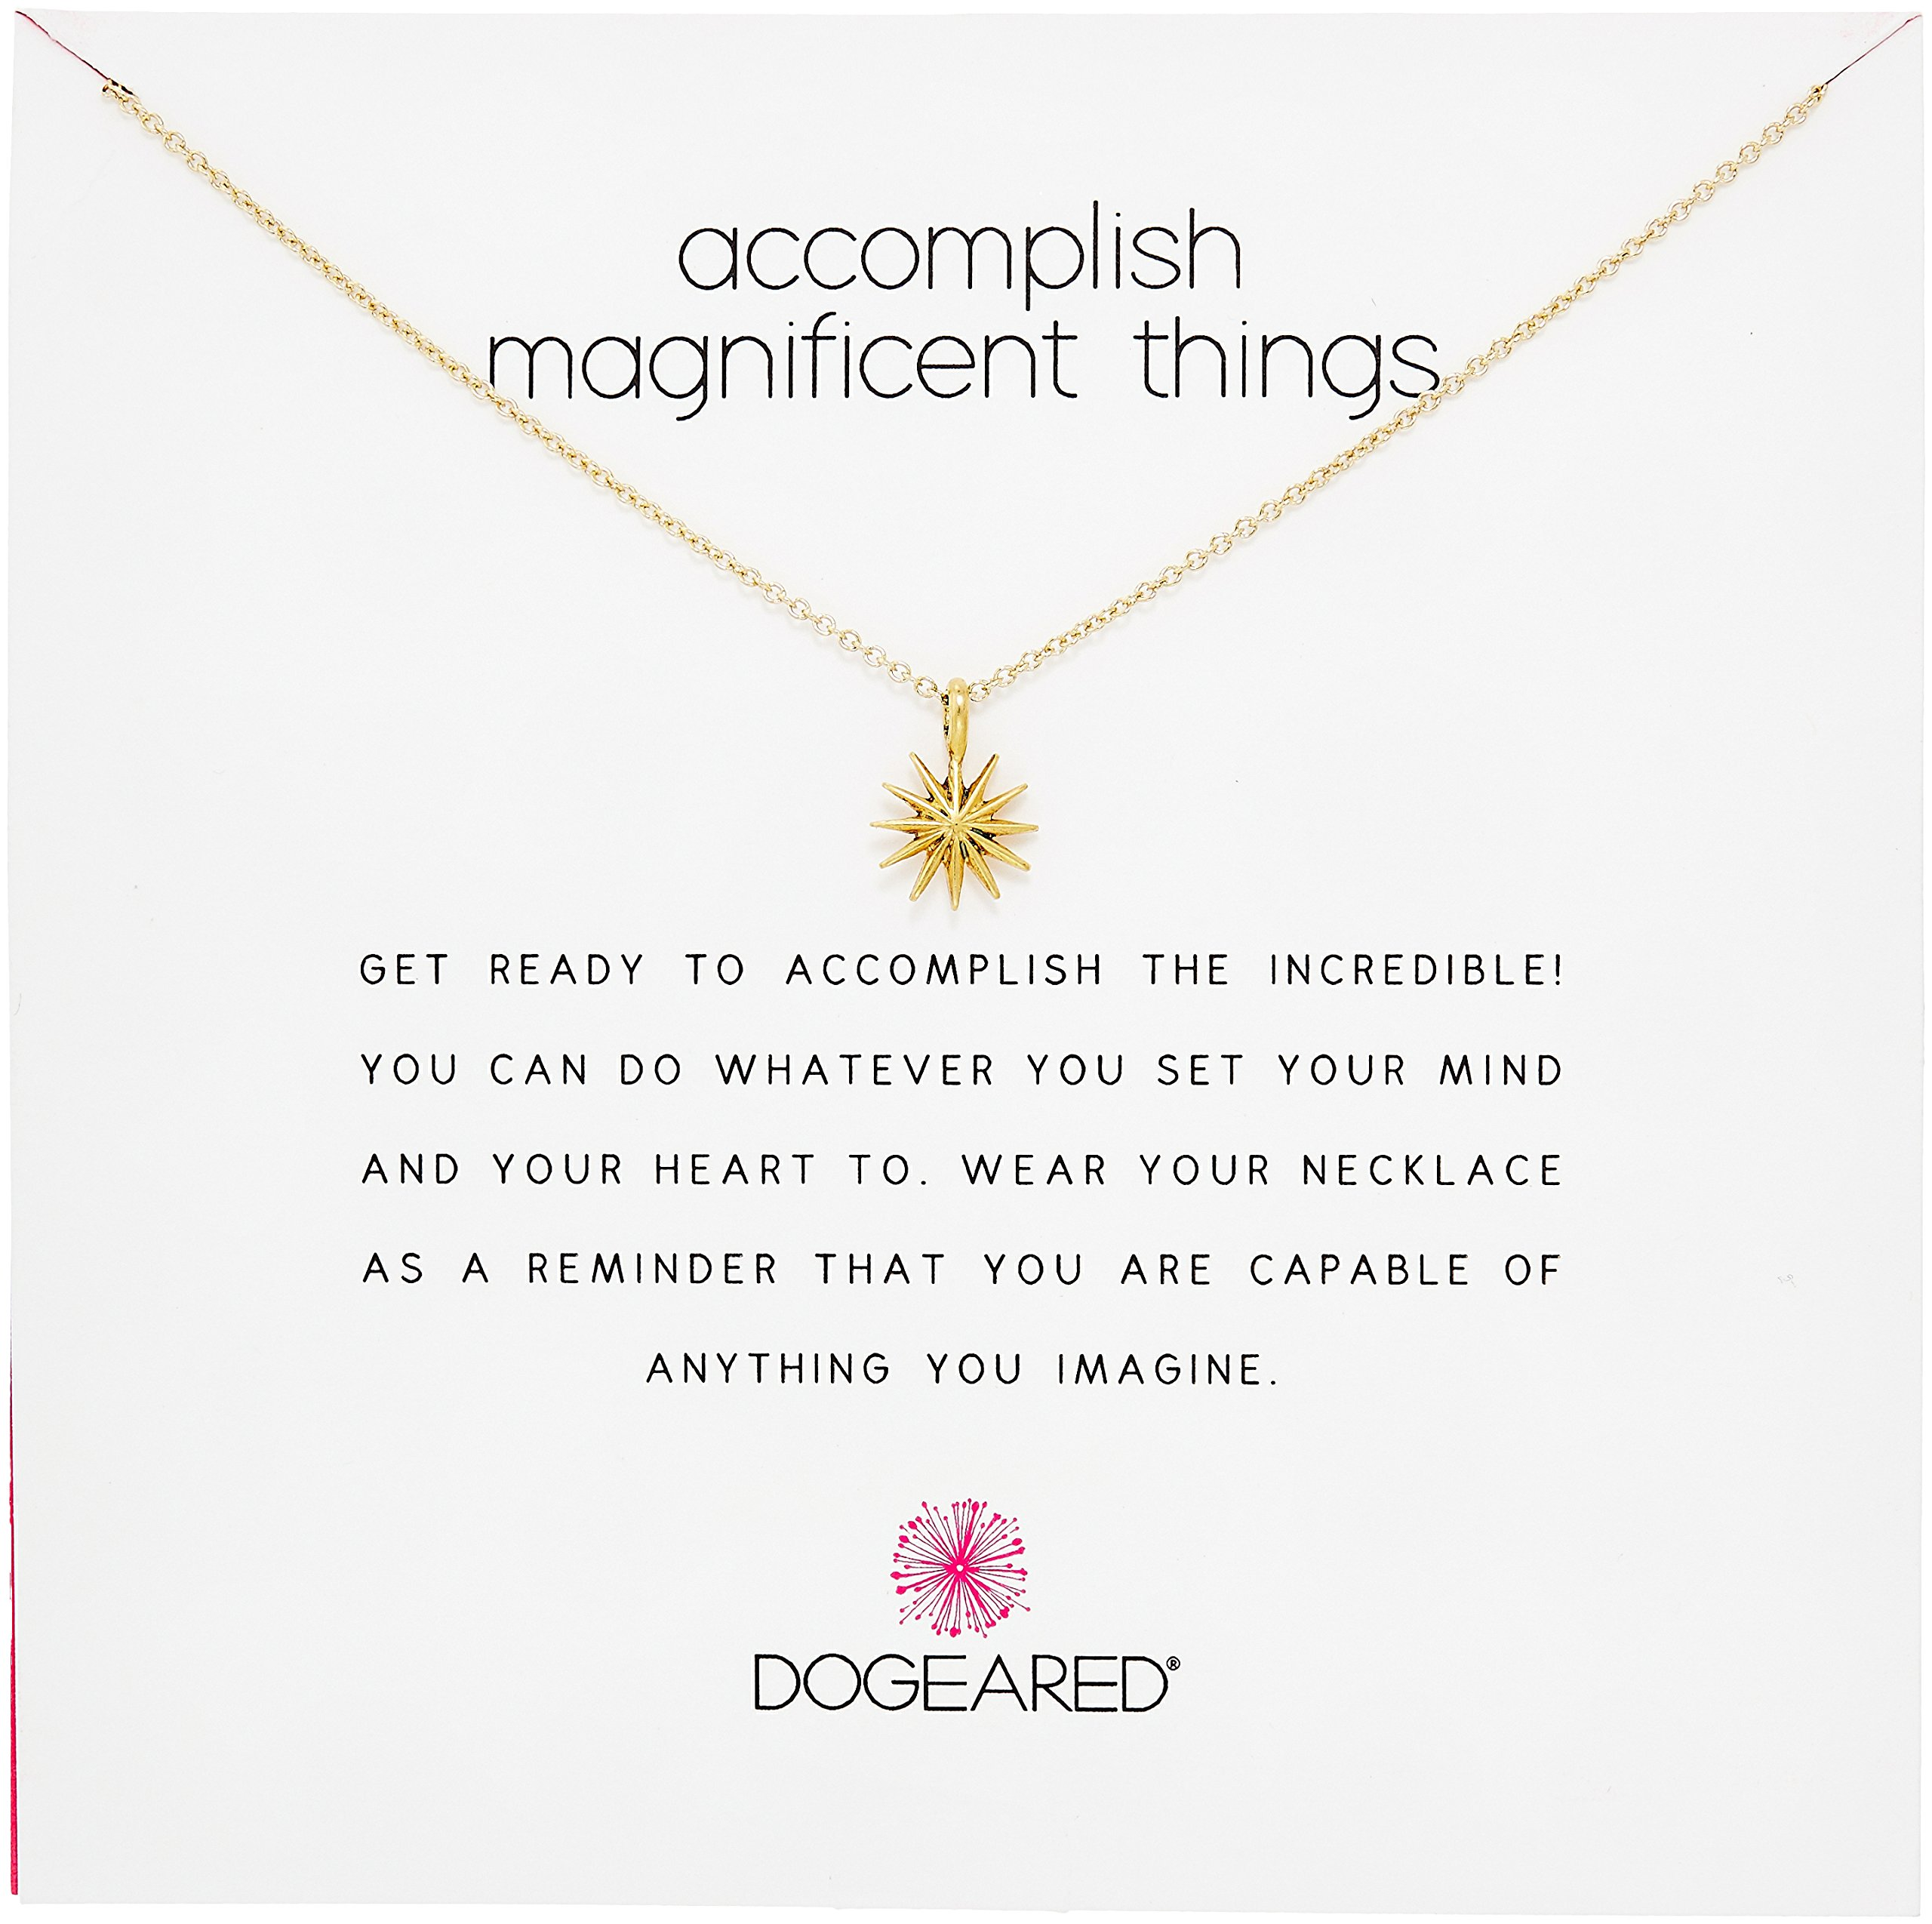 Dogeared Reminders Accomplish Magnificient Things Gold Dipped Sterling Silver Starburst Charm Necklace, 16''+2'' Extender